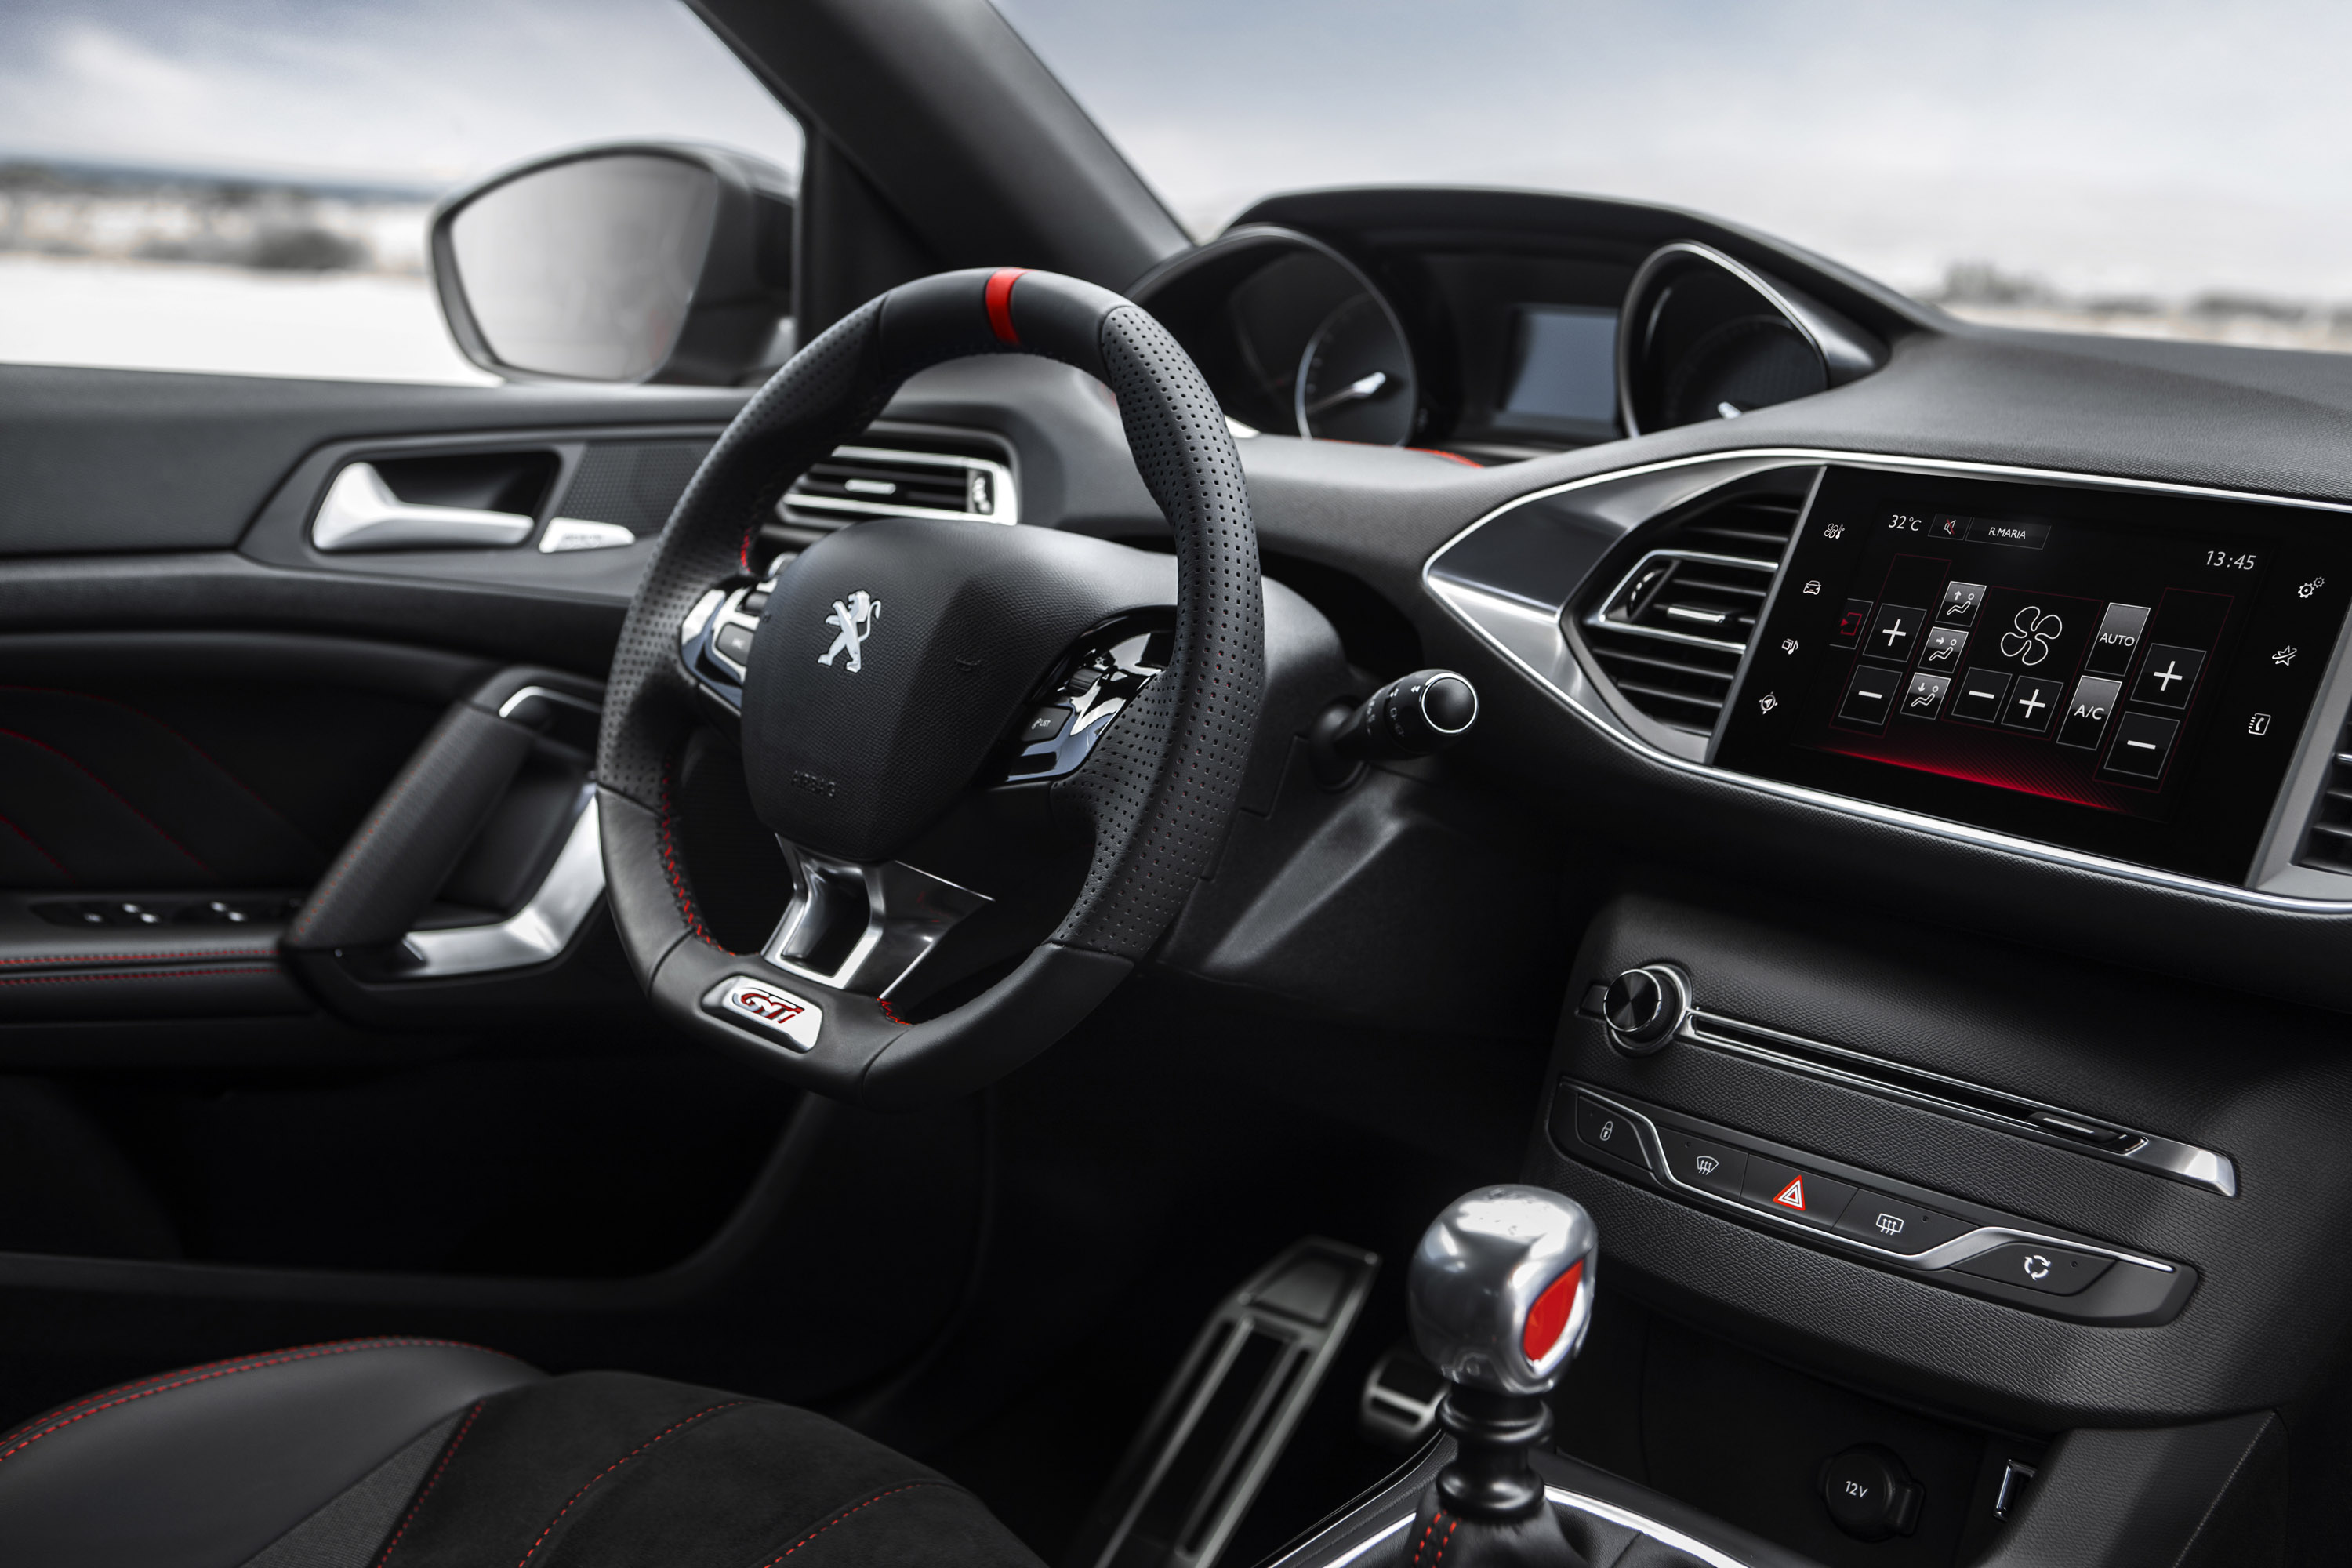 2016 Peugeot 308 Gti Cockpit Interior (Photo 5 of 15)